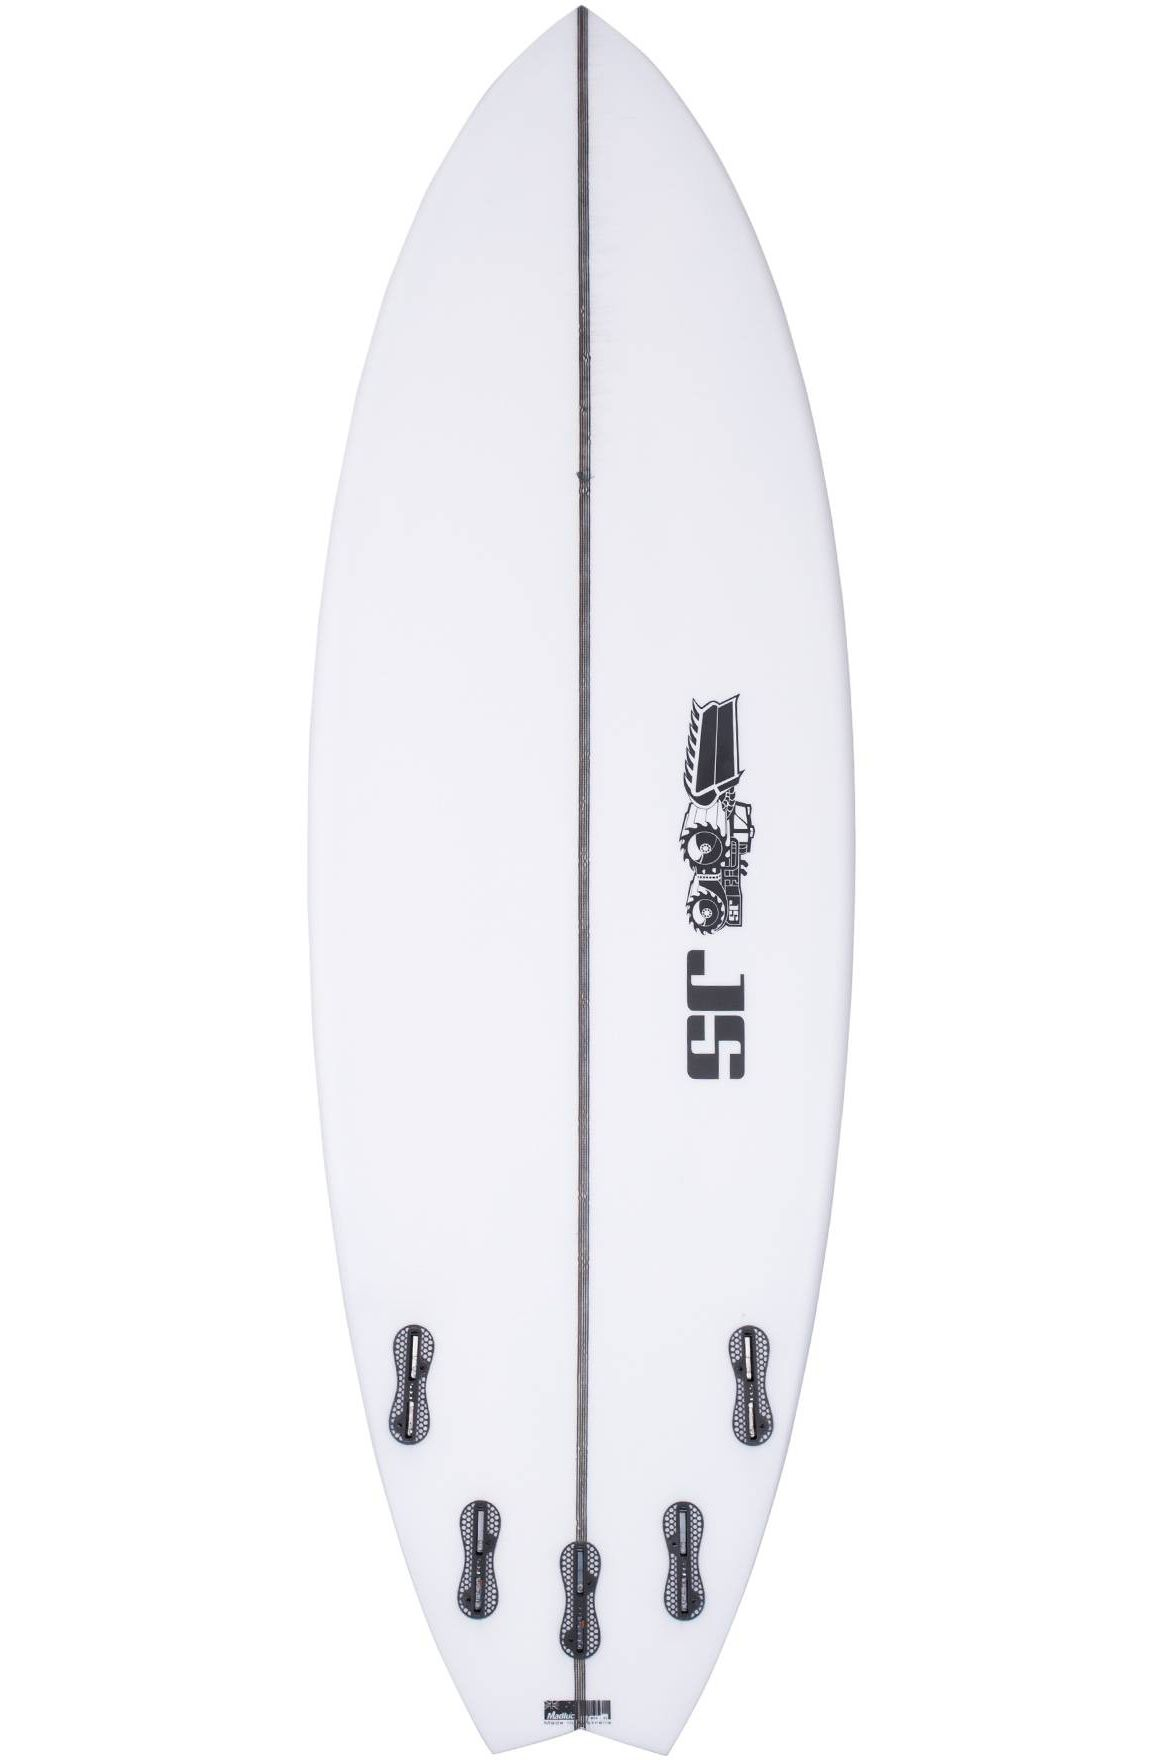 Prancha Surf JS PSYCHO NITRO 5'9 Swallow Tail - White FCS II Multisystem 5ft9